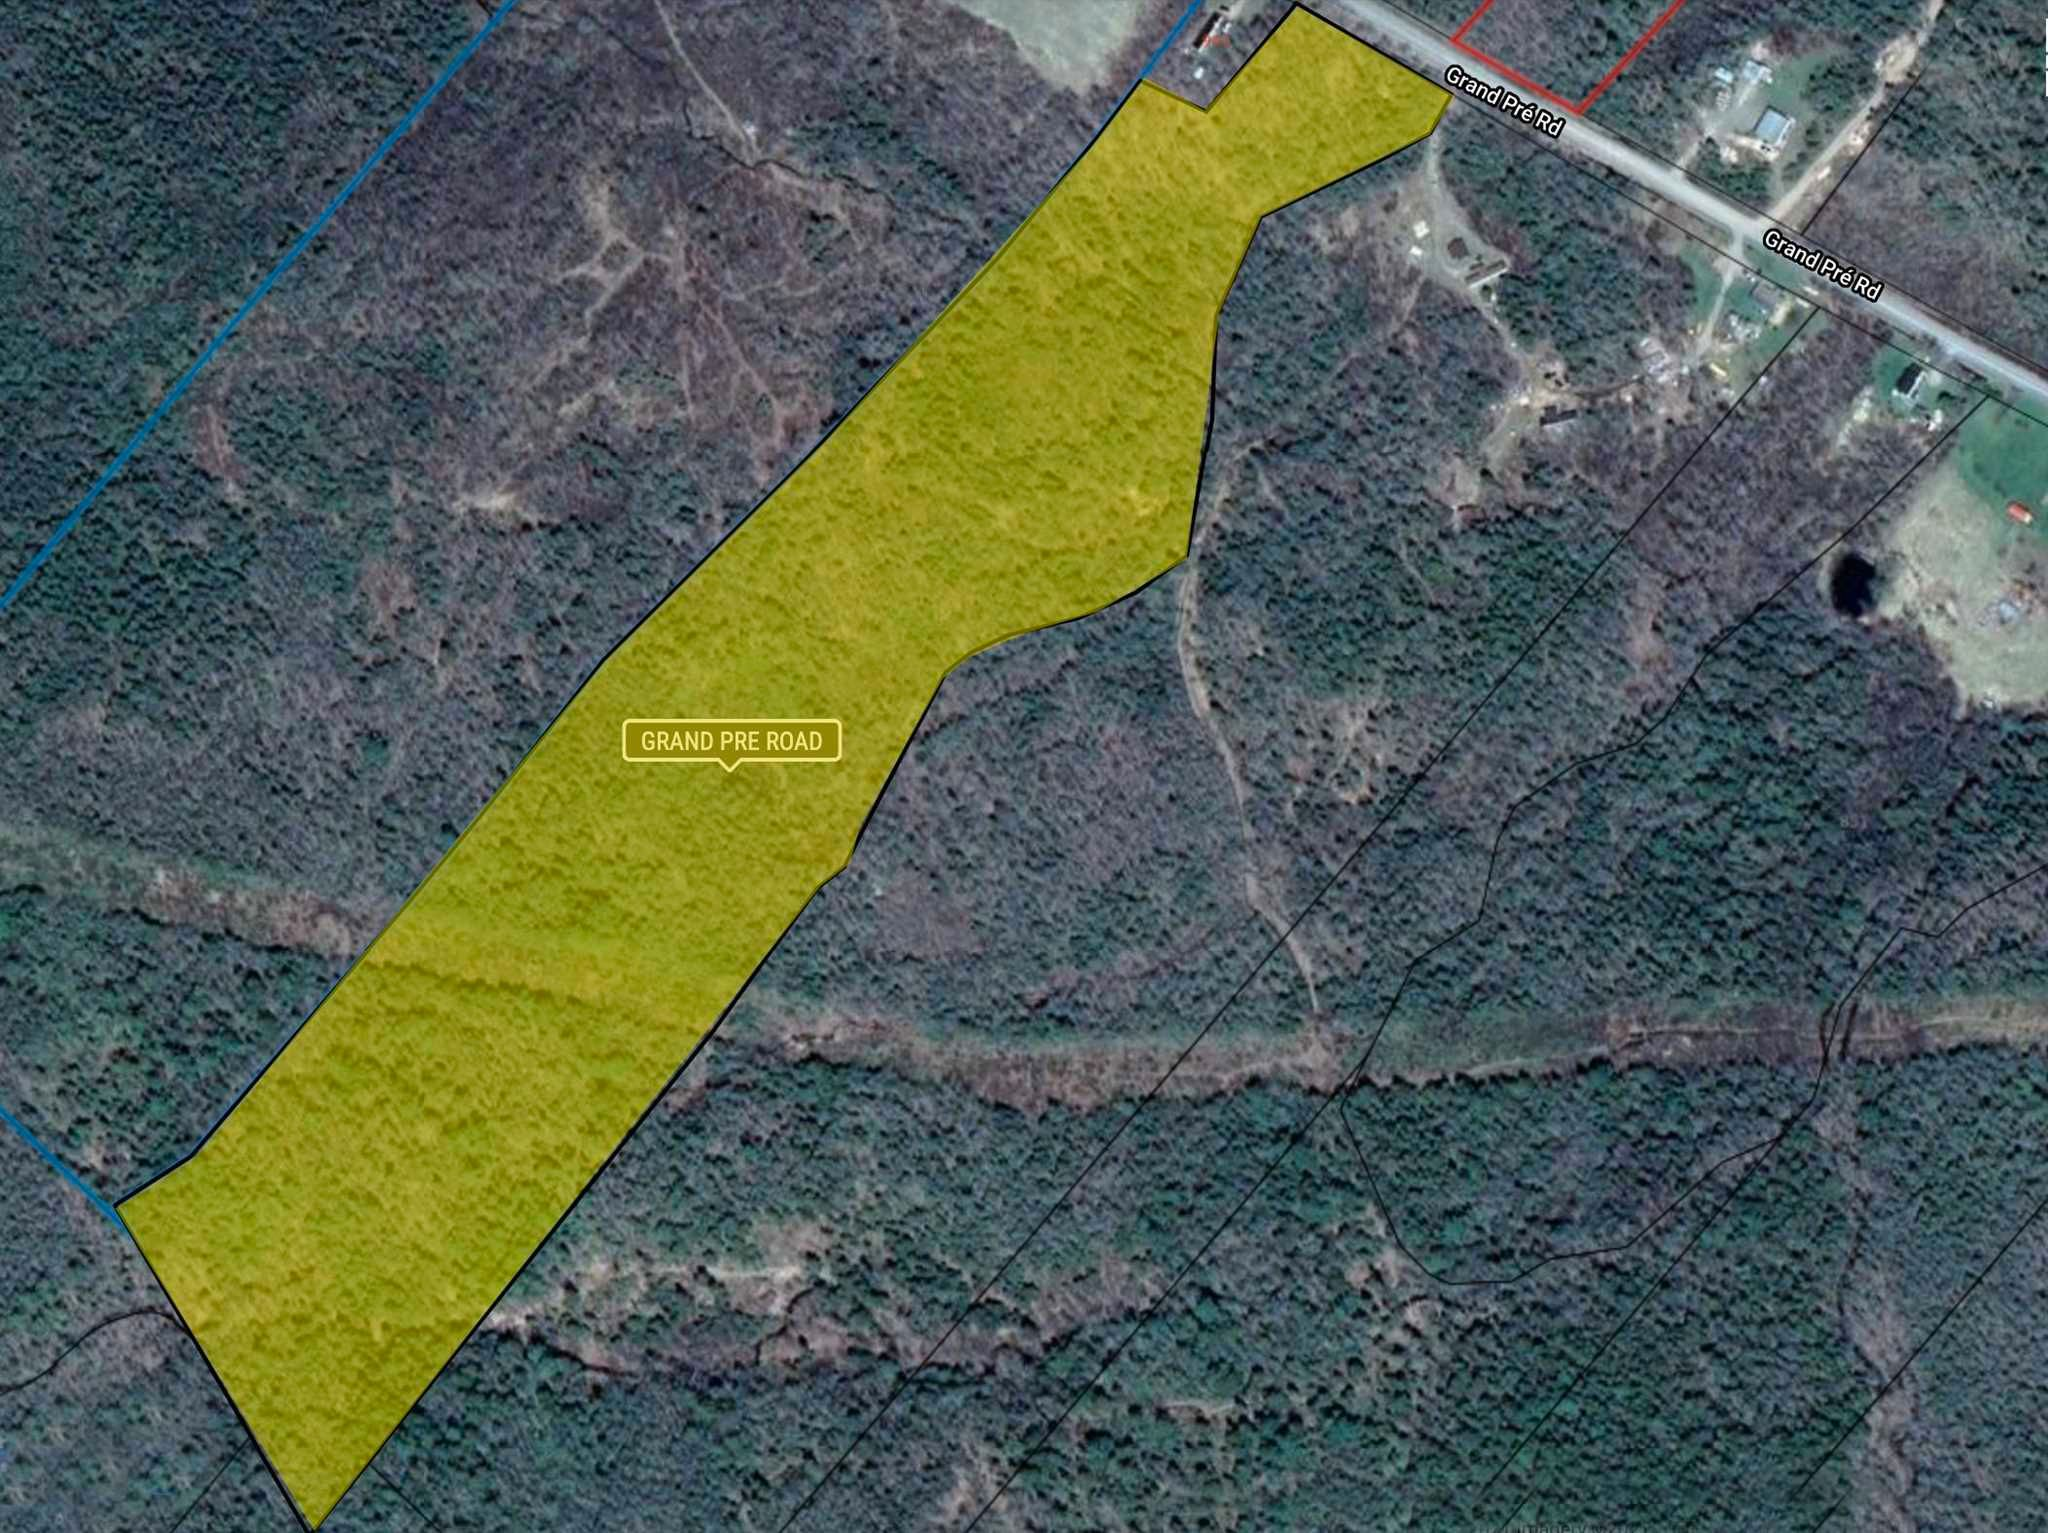 Main Photo: Lot Grand Pre Road in Wallbrook: 404-Kings County Vacant Land for sale (Annapolis Valley)  : MLS®# 202118148